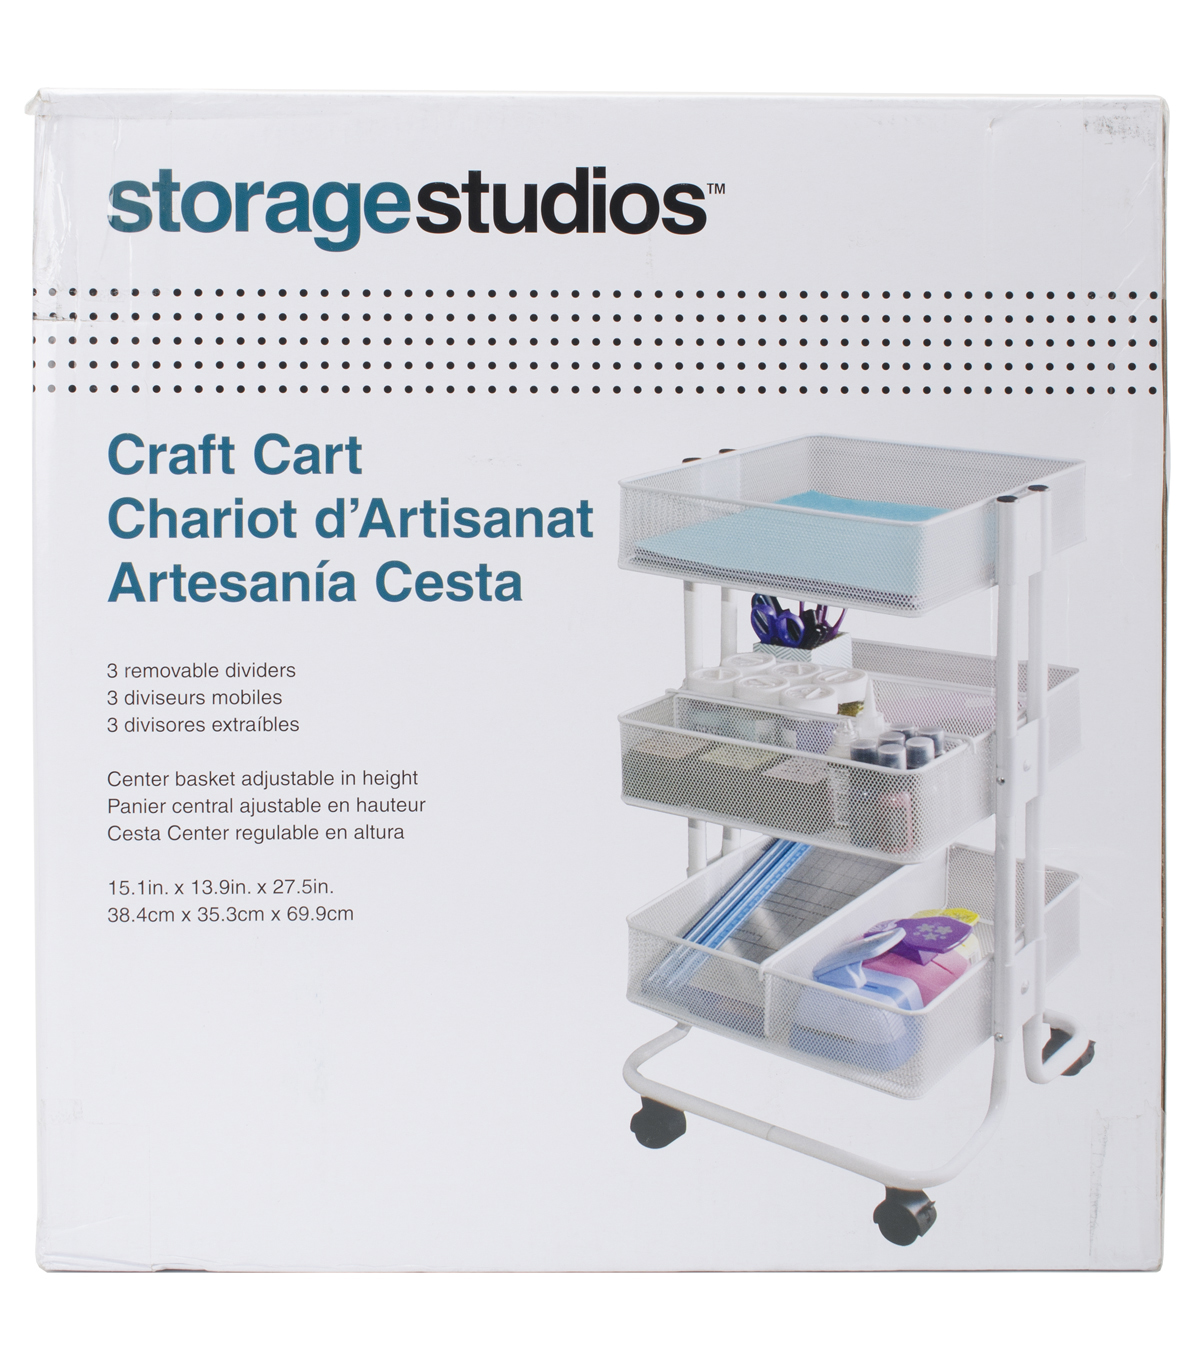 Gentil Storage Studios Rolling Craft Cart With Three Bins